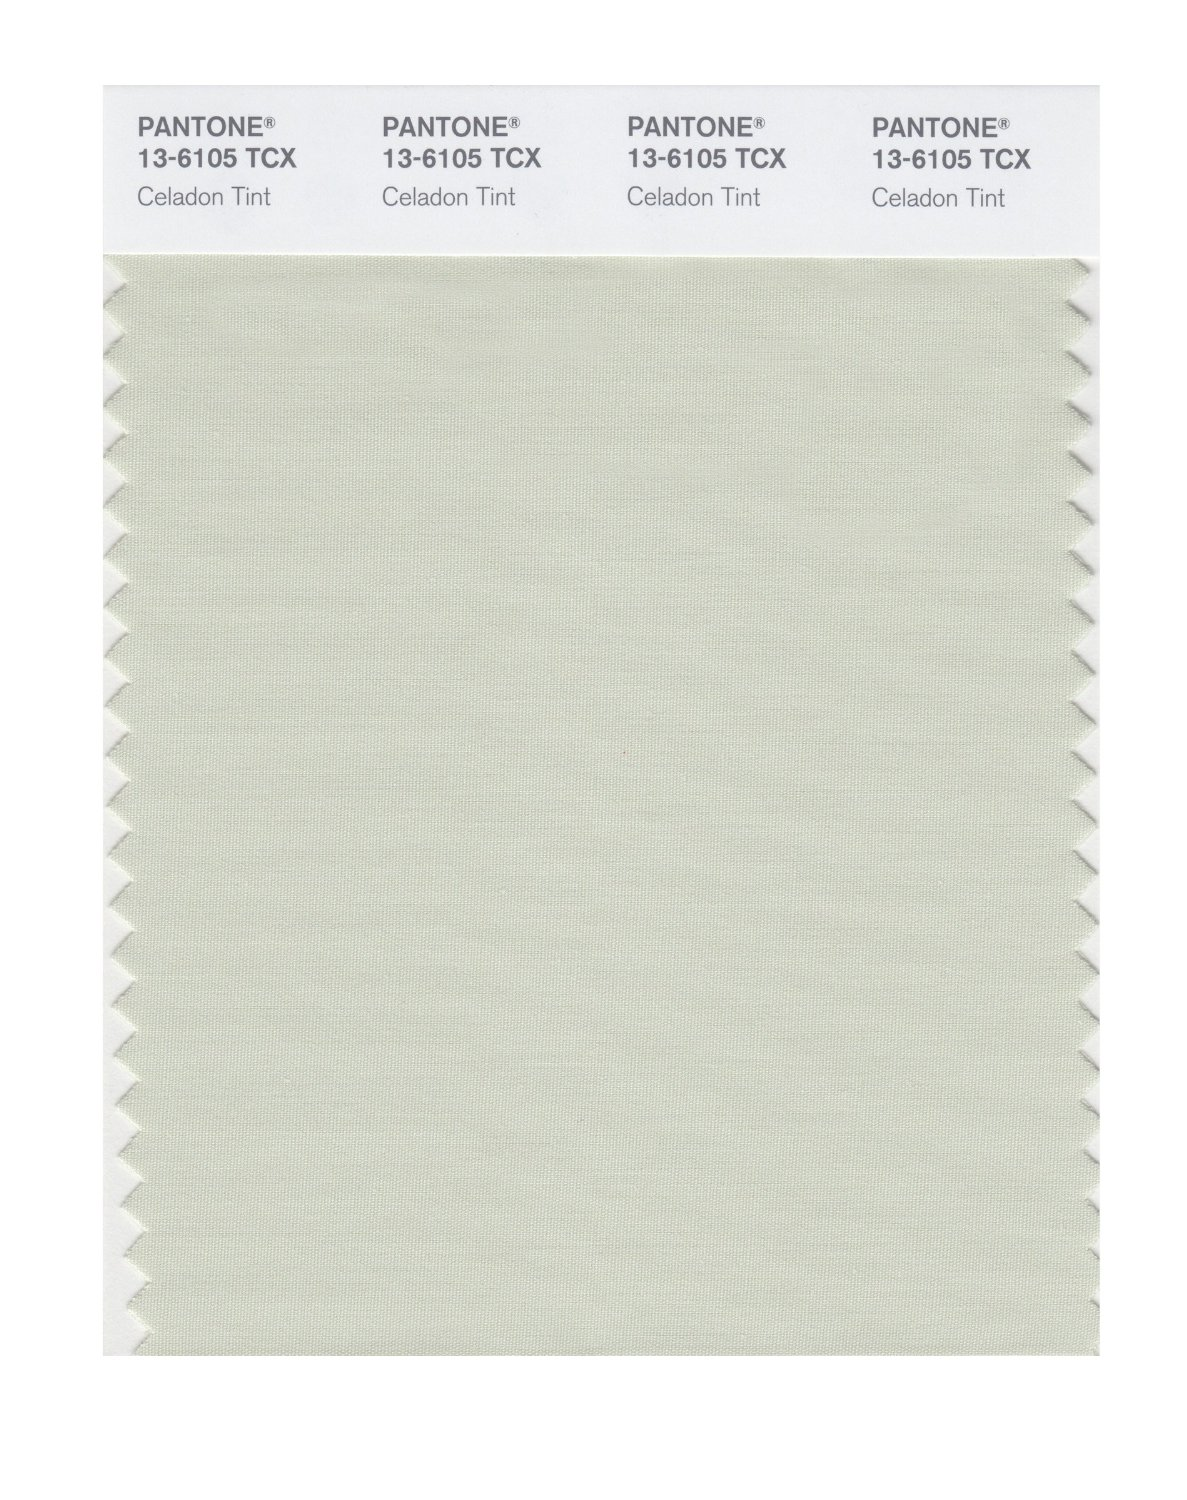 Pantone Smart Swatch 13-6105 Celadon Tint